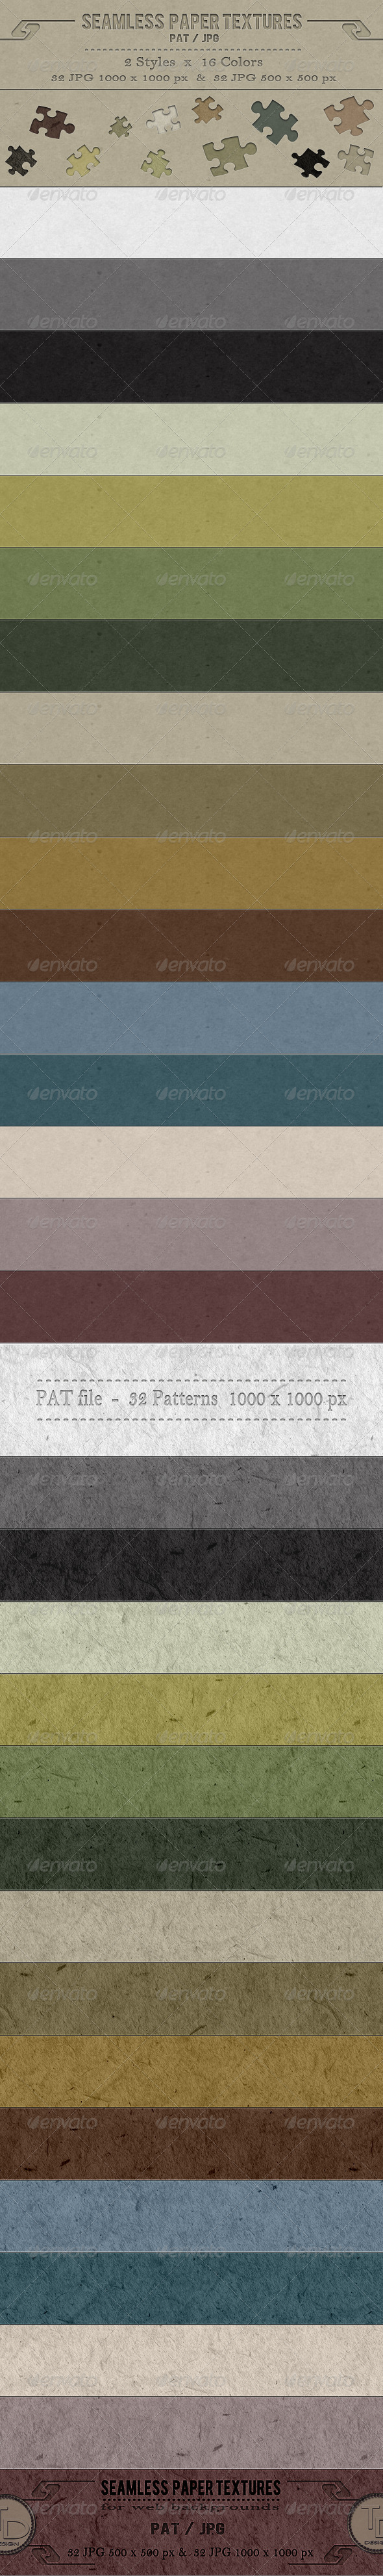 Seamless Paper Textures - Textures / Fills / Patterns Photoshop